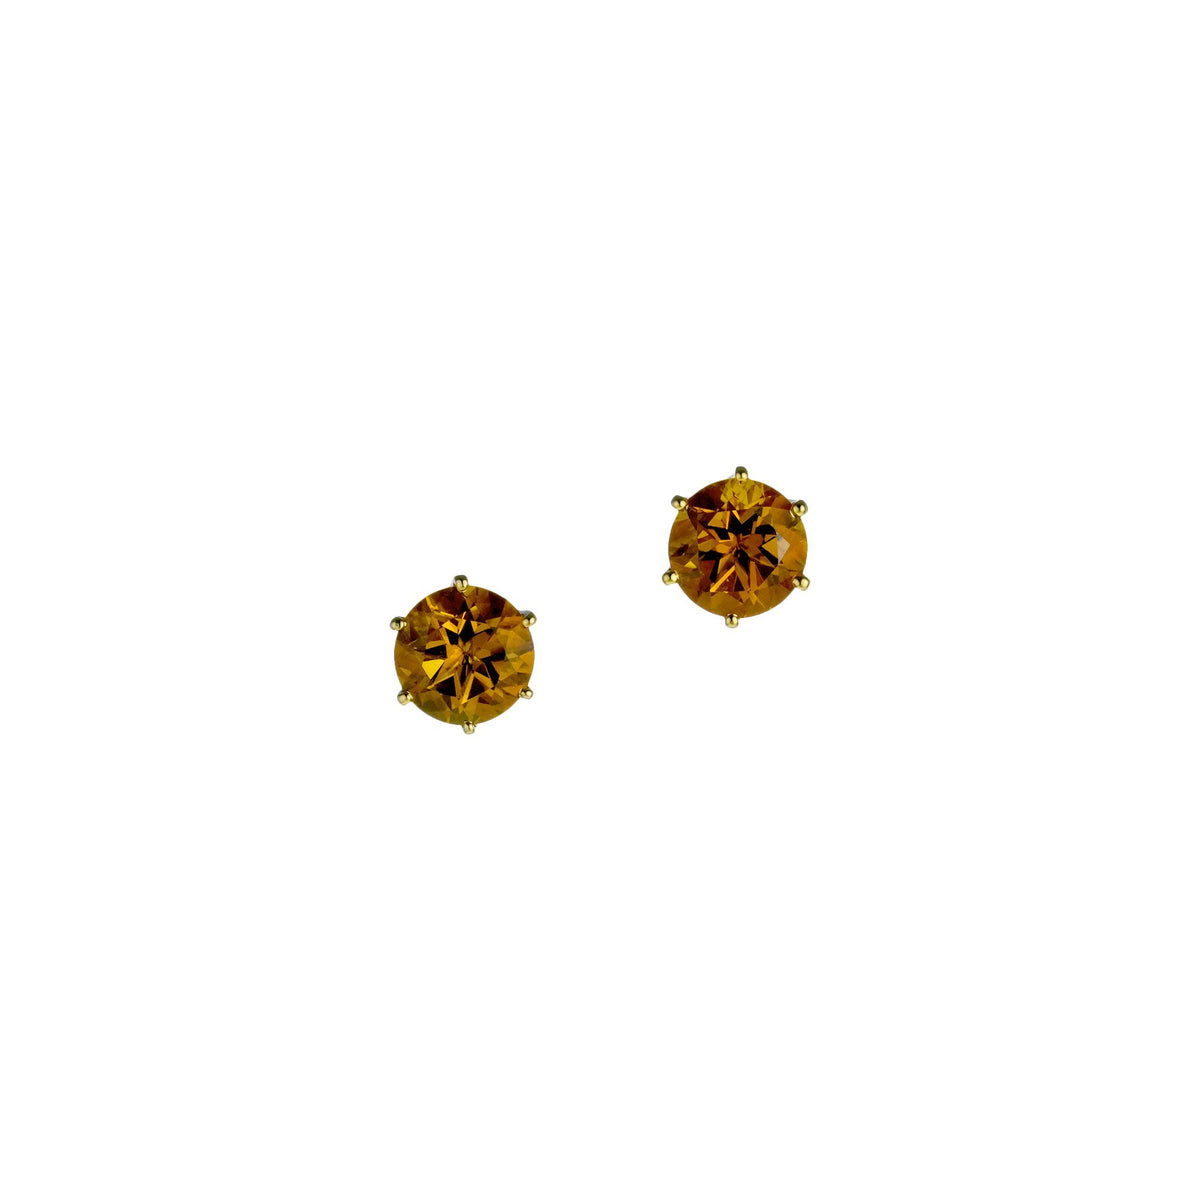 Golden Citrine Studs, 2.61 carats